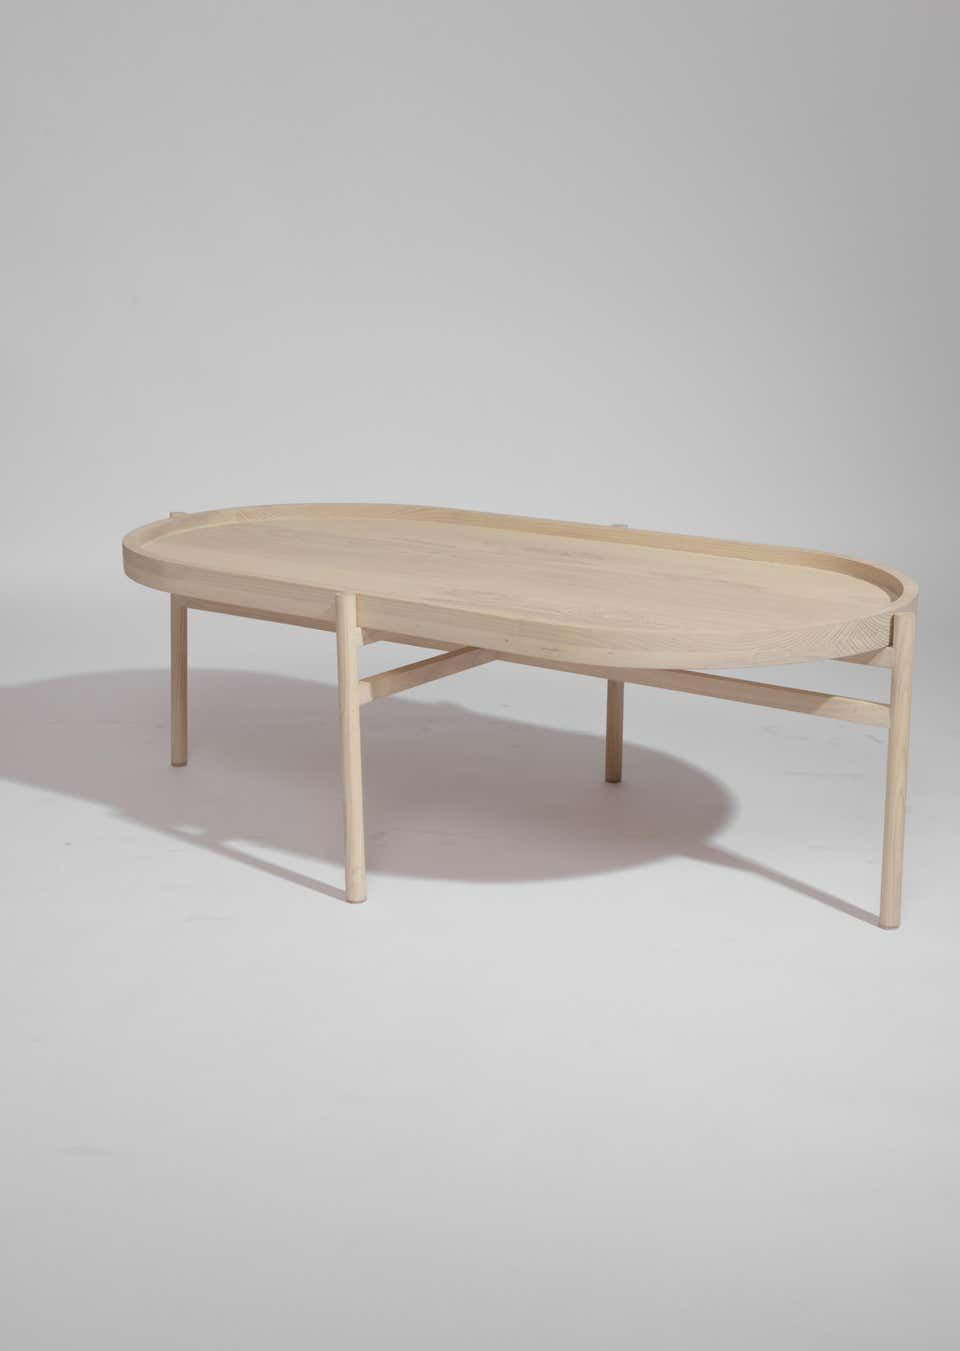 Mar Solid Ash Wood Coffee Table In 2021 Coffee Table Wood Coffee Table Scandinavian Coffee Table [ 1351 x 960 Pixel ]